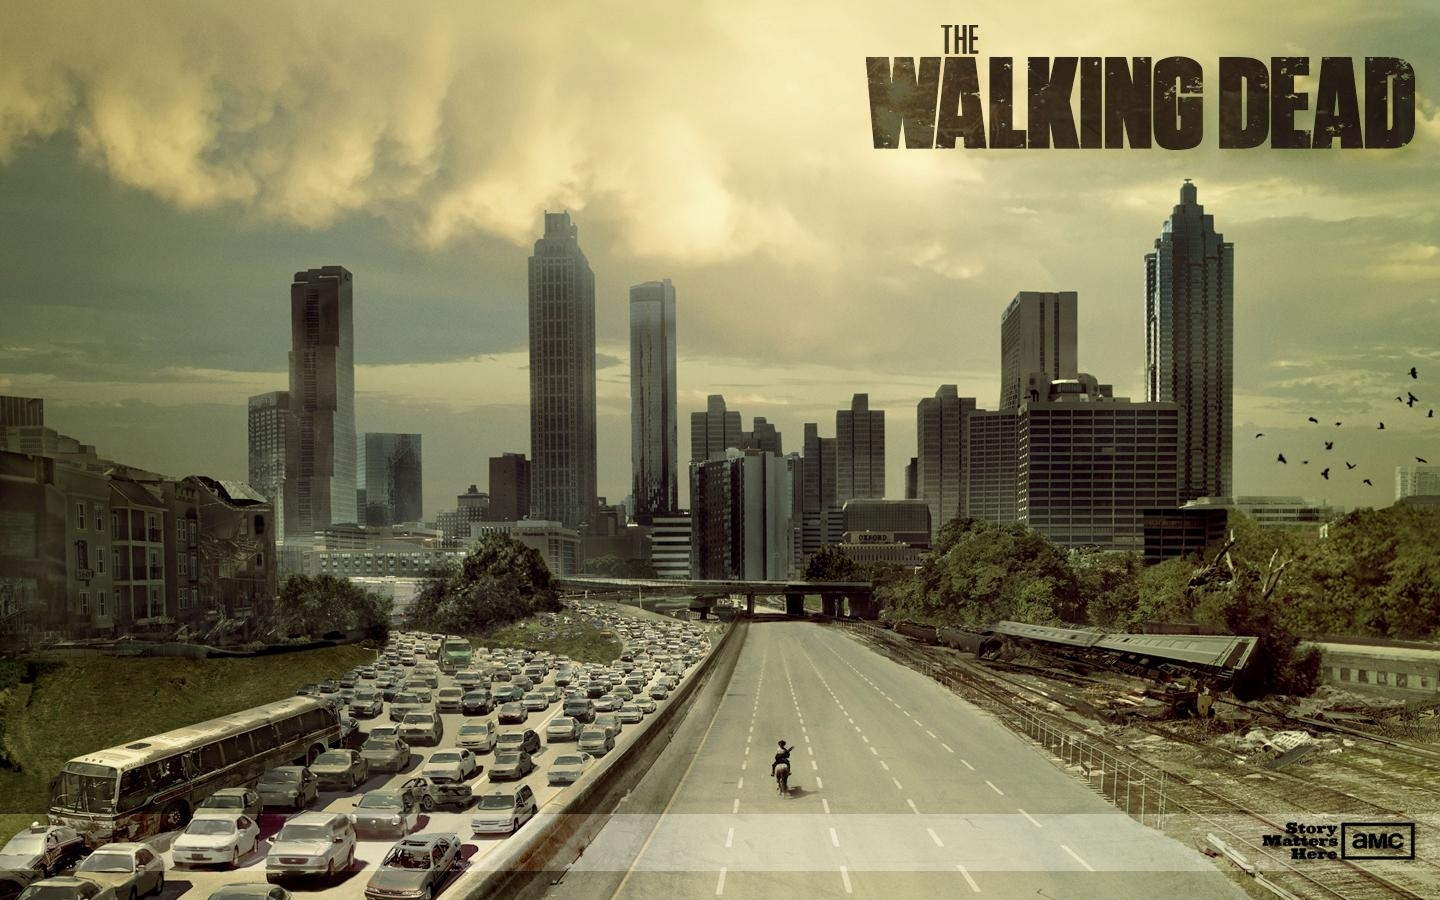 205 the walking dead fonds d'écran hd | arrière-plans - wallpaper abyss